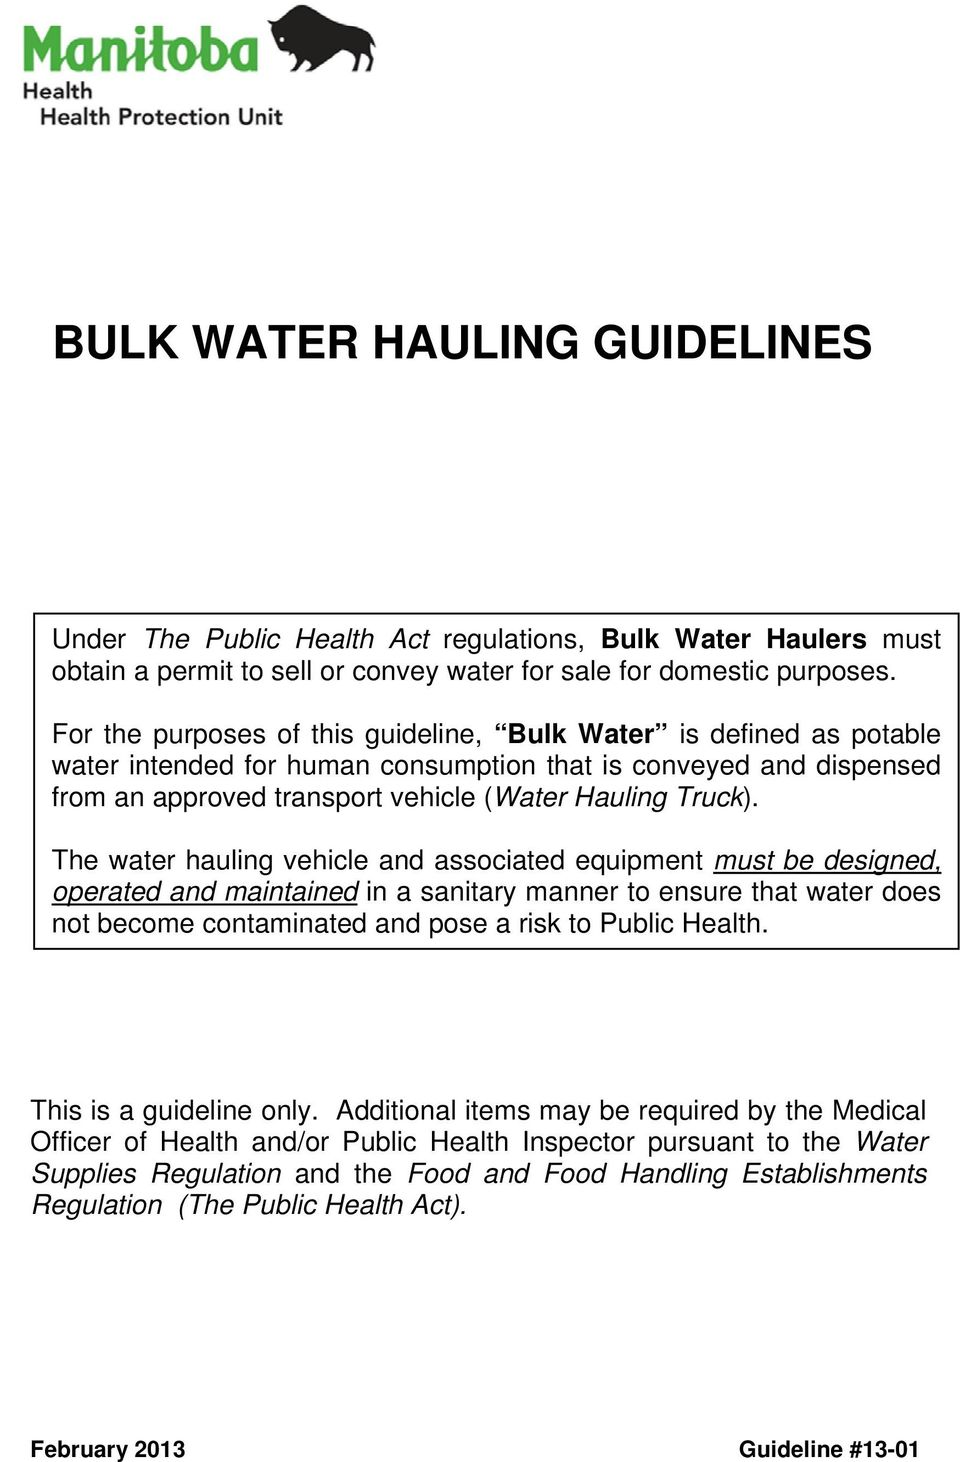 The water hauling vehicle and associated equipment must be designed, operated and maintained in a sanitary manner to ensure that water does not become contaminated and pose a risk to Public Health.